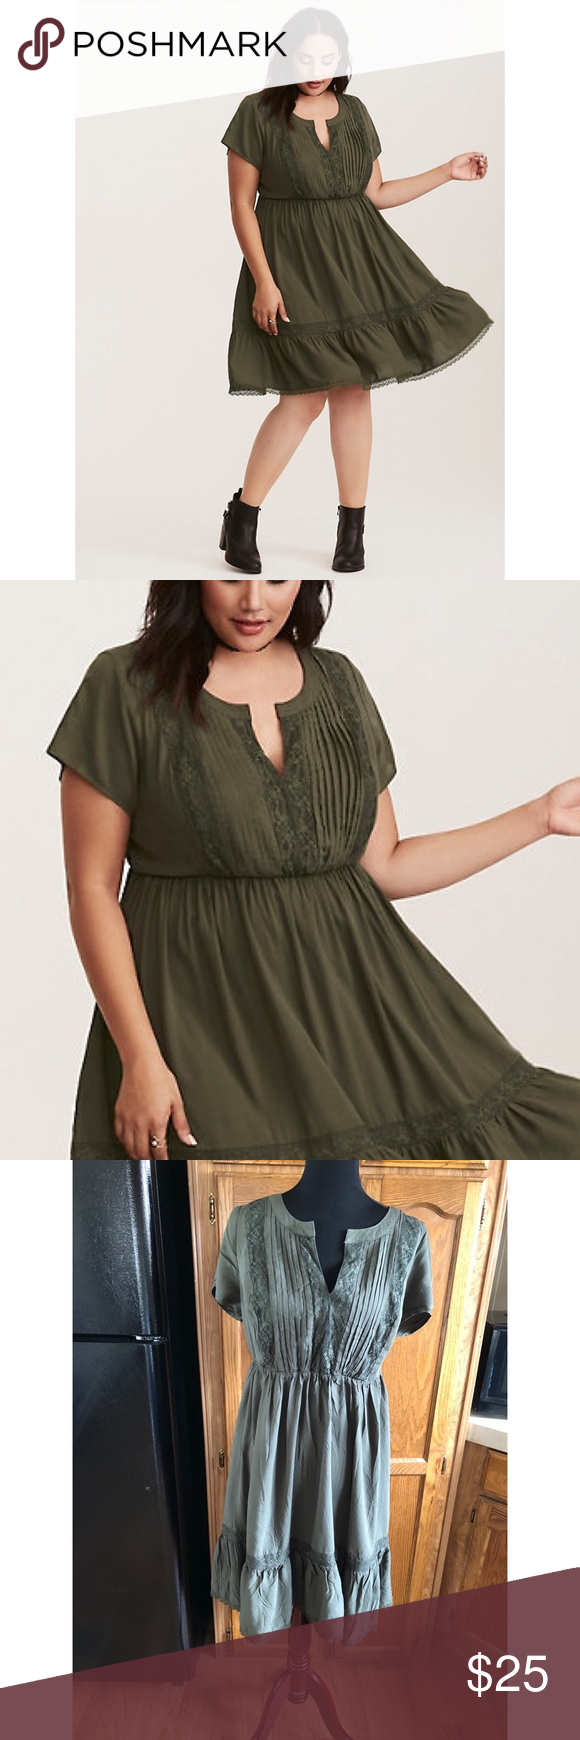 c06758207c Torrid Olive Green Challis Lace Dress Size 0 (0X) Torrid challis dress with lace  inset. Olive green color. Short sleeves. Size 0 (0X). Dress is 39 inches ...